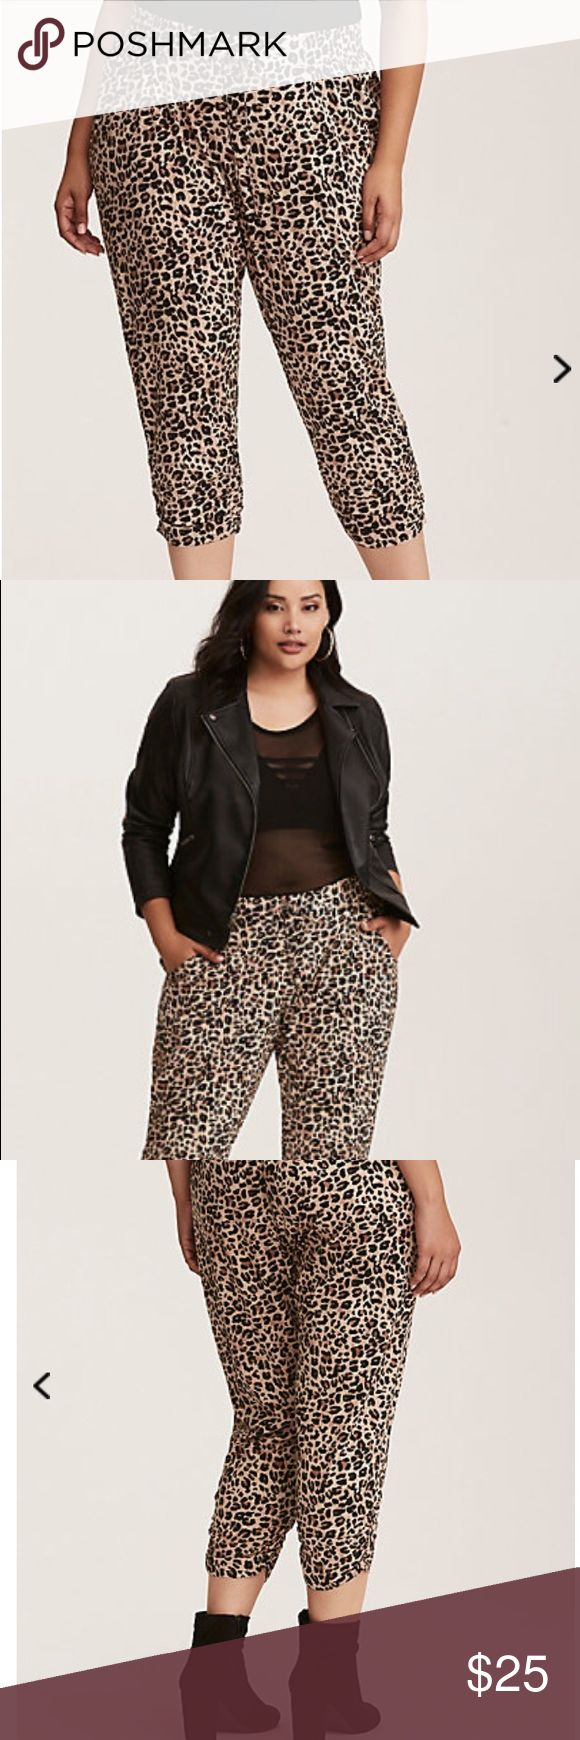 """Torrid Leopard Joggers Size 0 These are the fanciest jogger pants ever. Challis fabric lends effortlessness to the cropped pair, with a fierce leopard print lending me-owww appeal. The ruched leg helps to play up your proportions, while the smocked adjustable drawstring waistband handles your curves oh-so-comfortably. 23"""" inseamRayon/spandexWash cold, line dryImported plus size pants torrid Pants Track Pants & Joggers"""